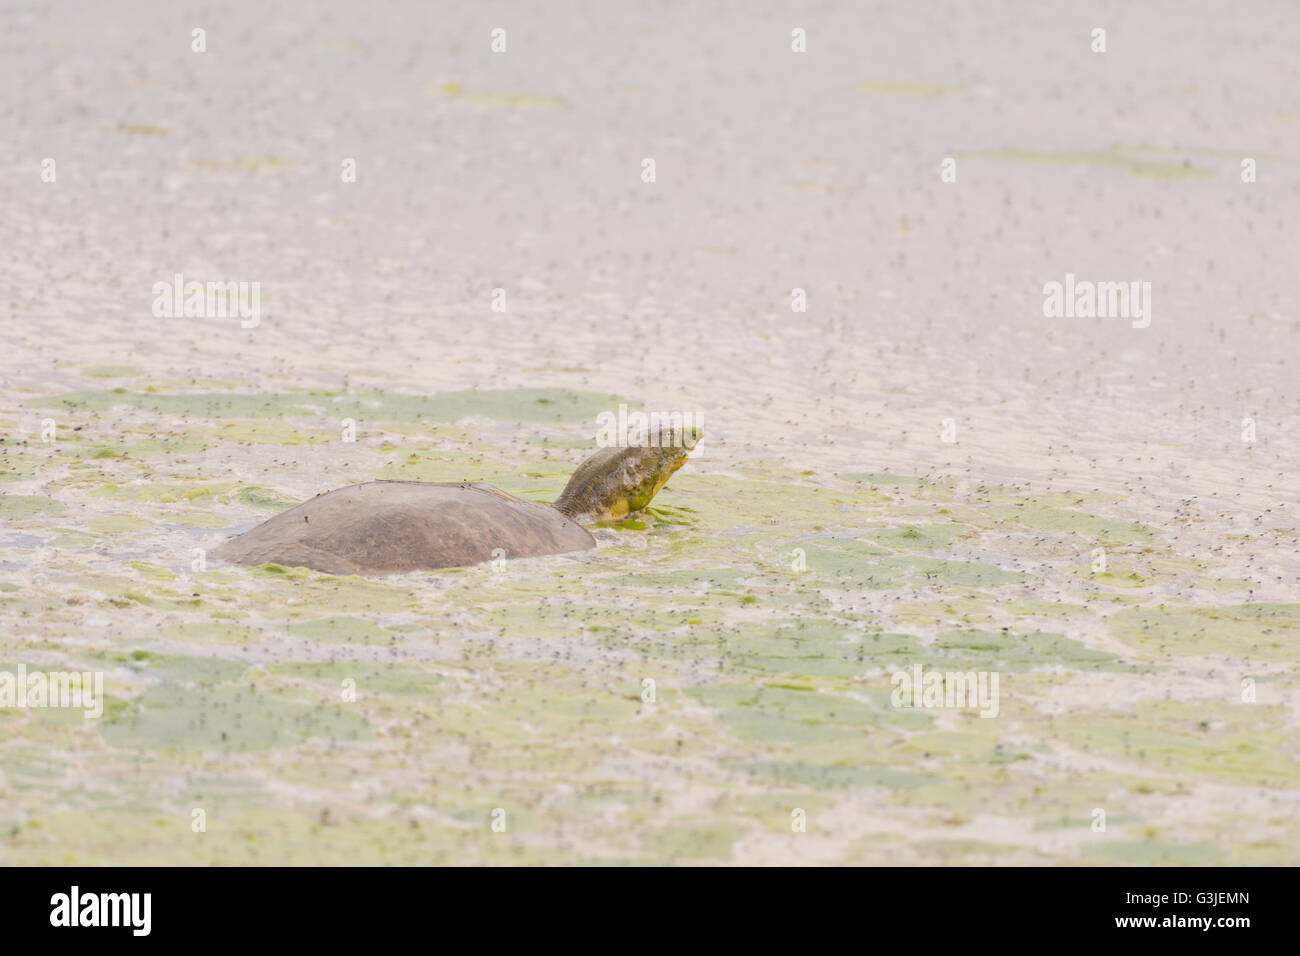 Texas Spiny Softshell, (Apalone spinifera emoryi), Bosque del Apache National Wildlife Refuge, New Mexico, USA. - Stock Image